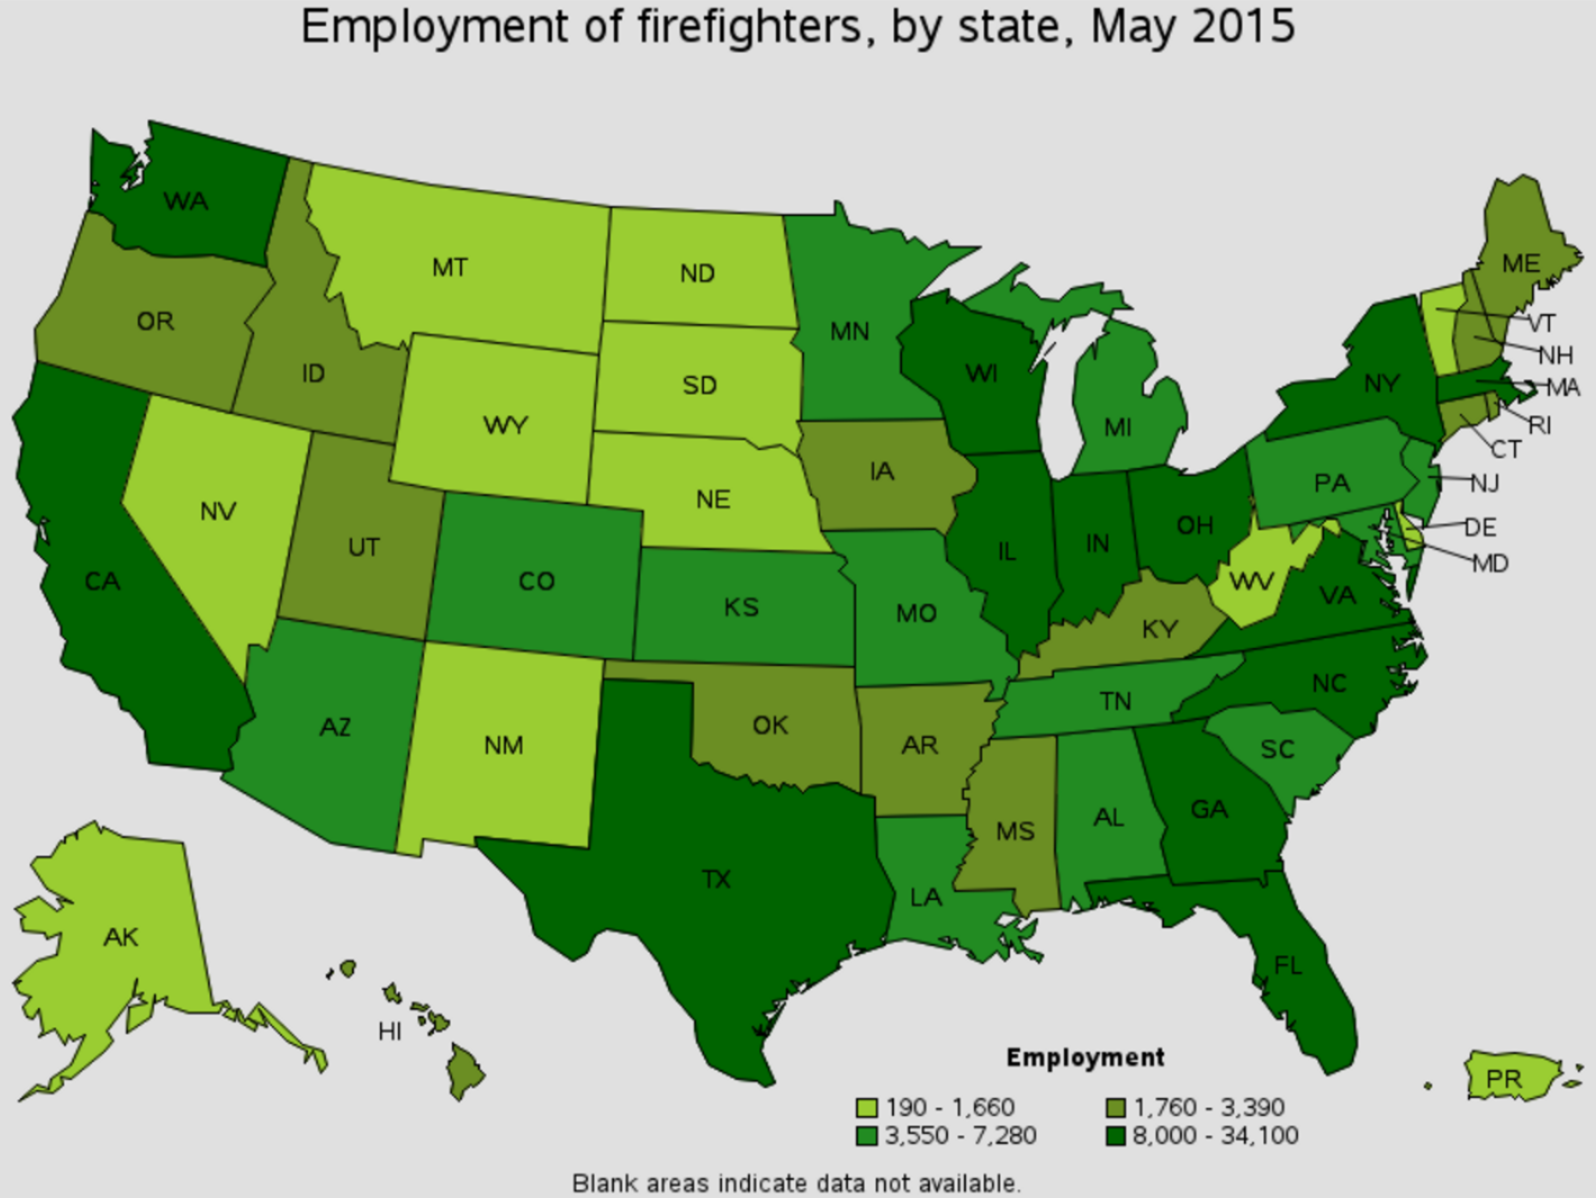 firefighter job outlook by state Tucson Arizona